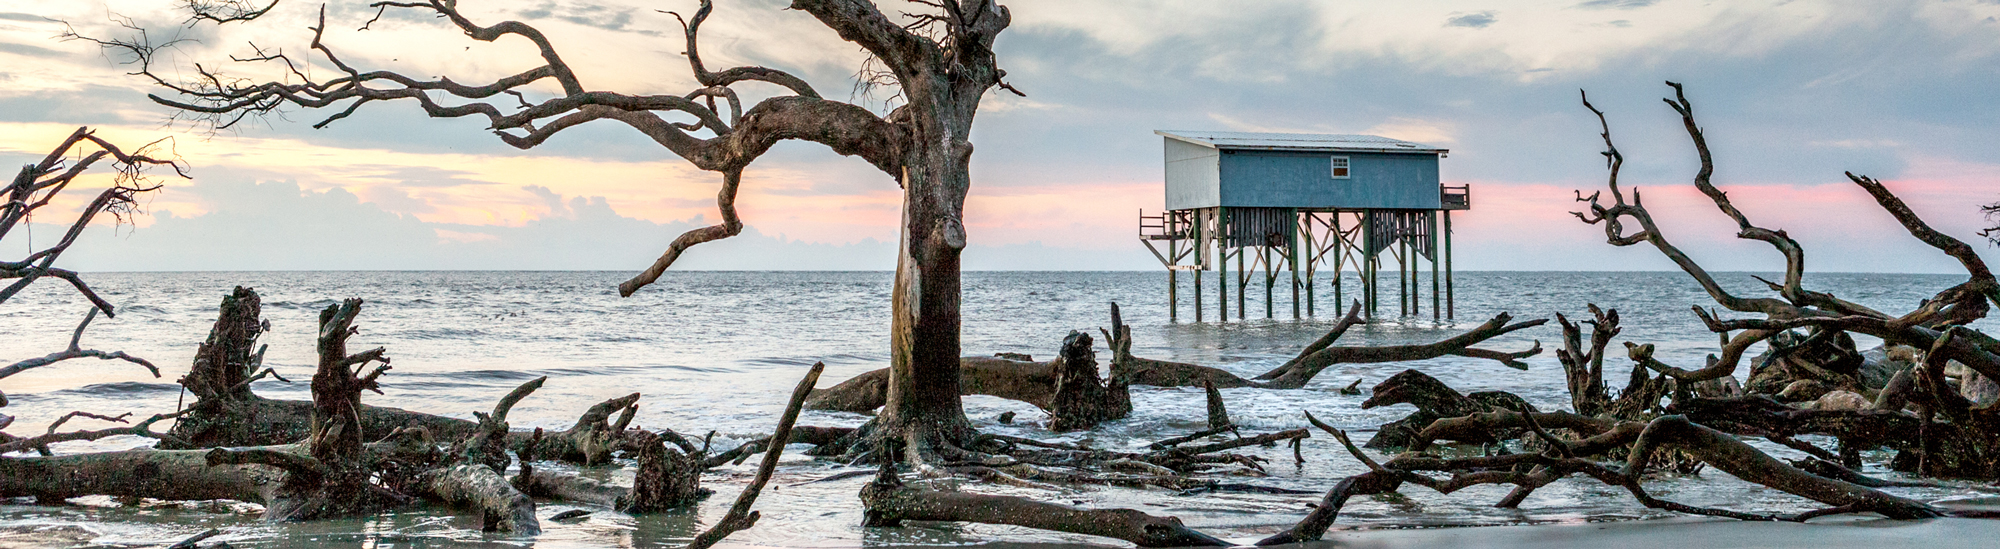 Dead trees and old beach house now covered at high tide.